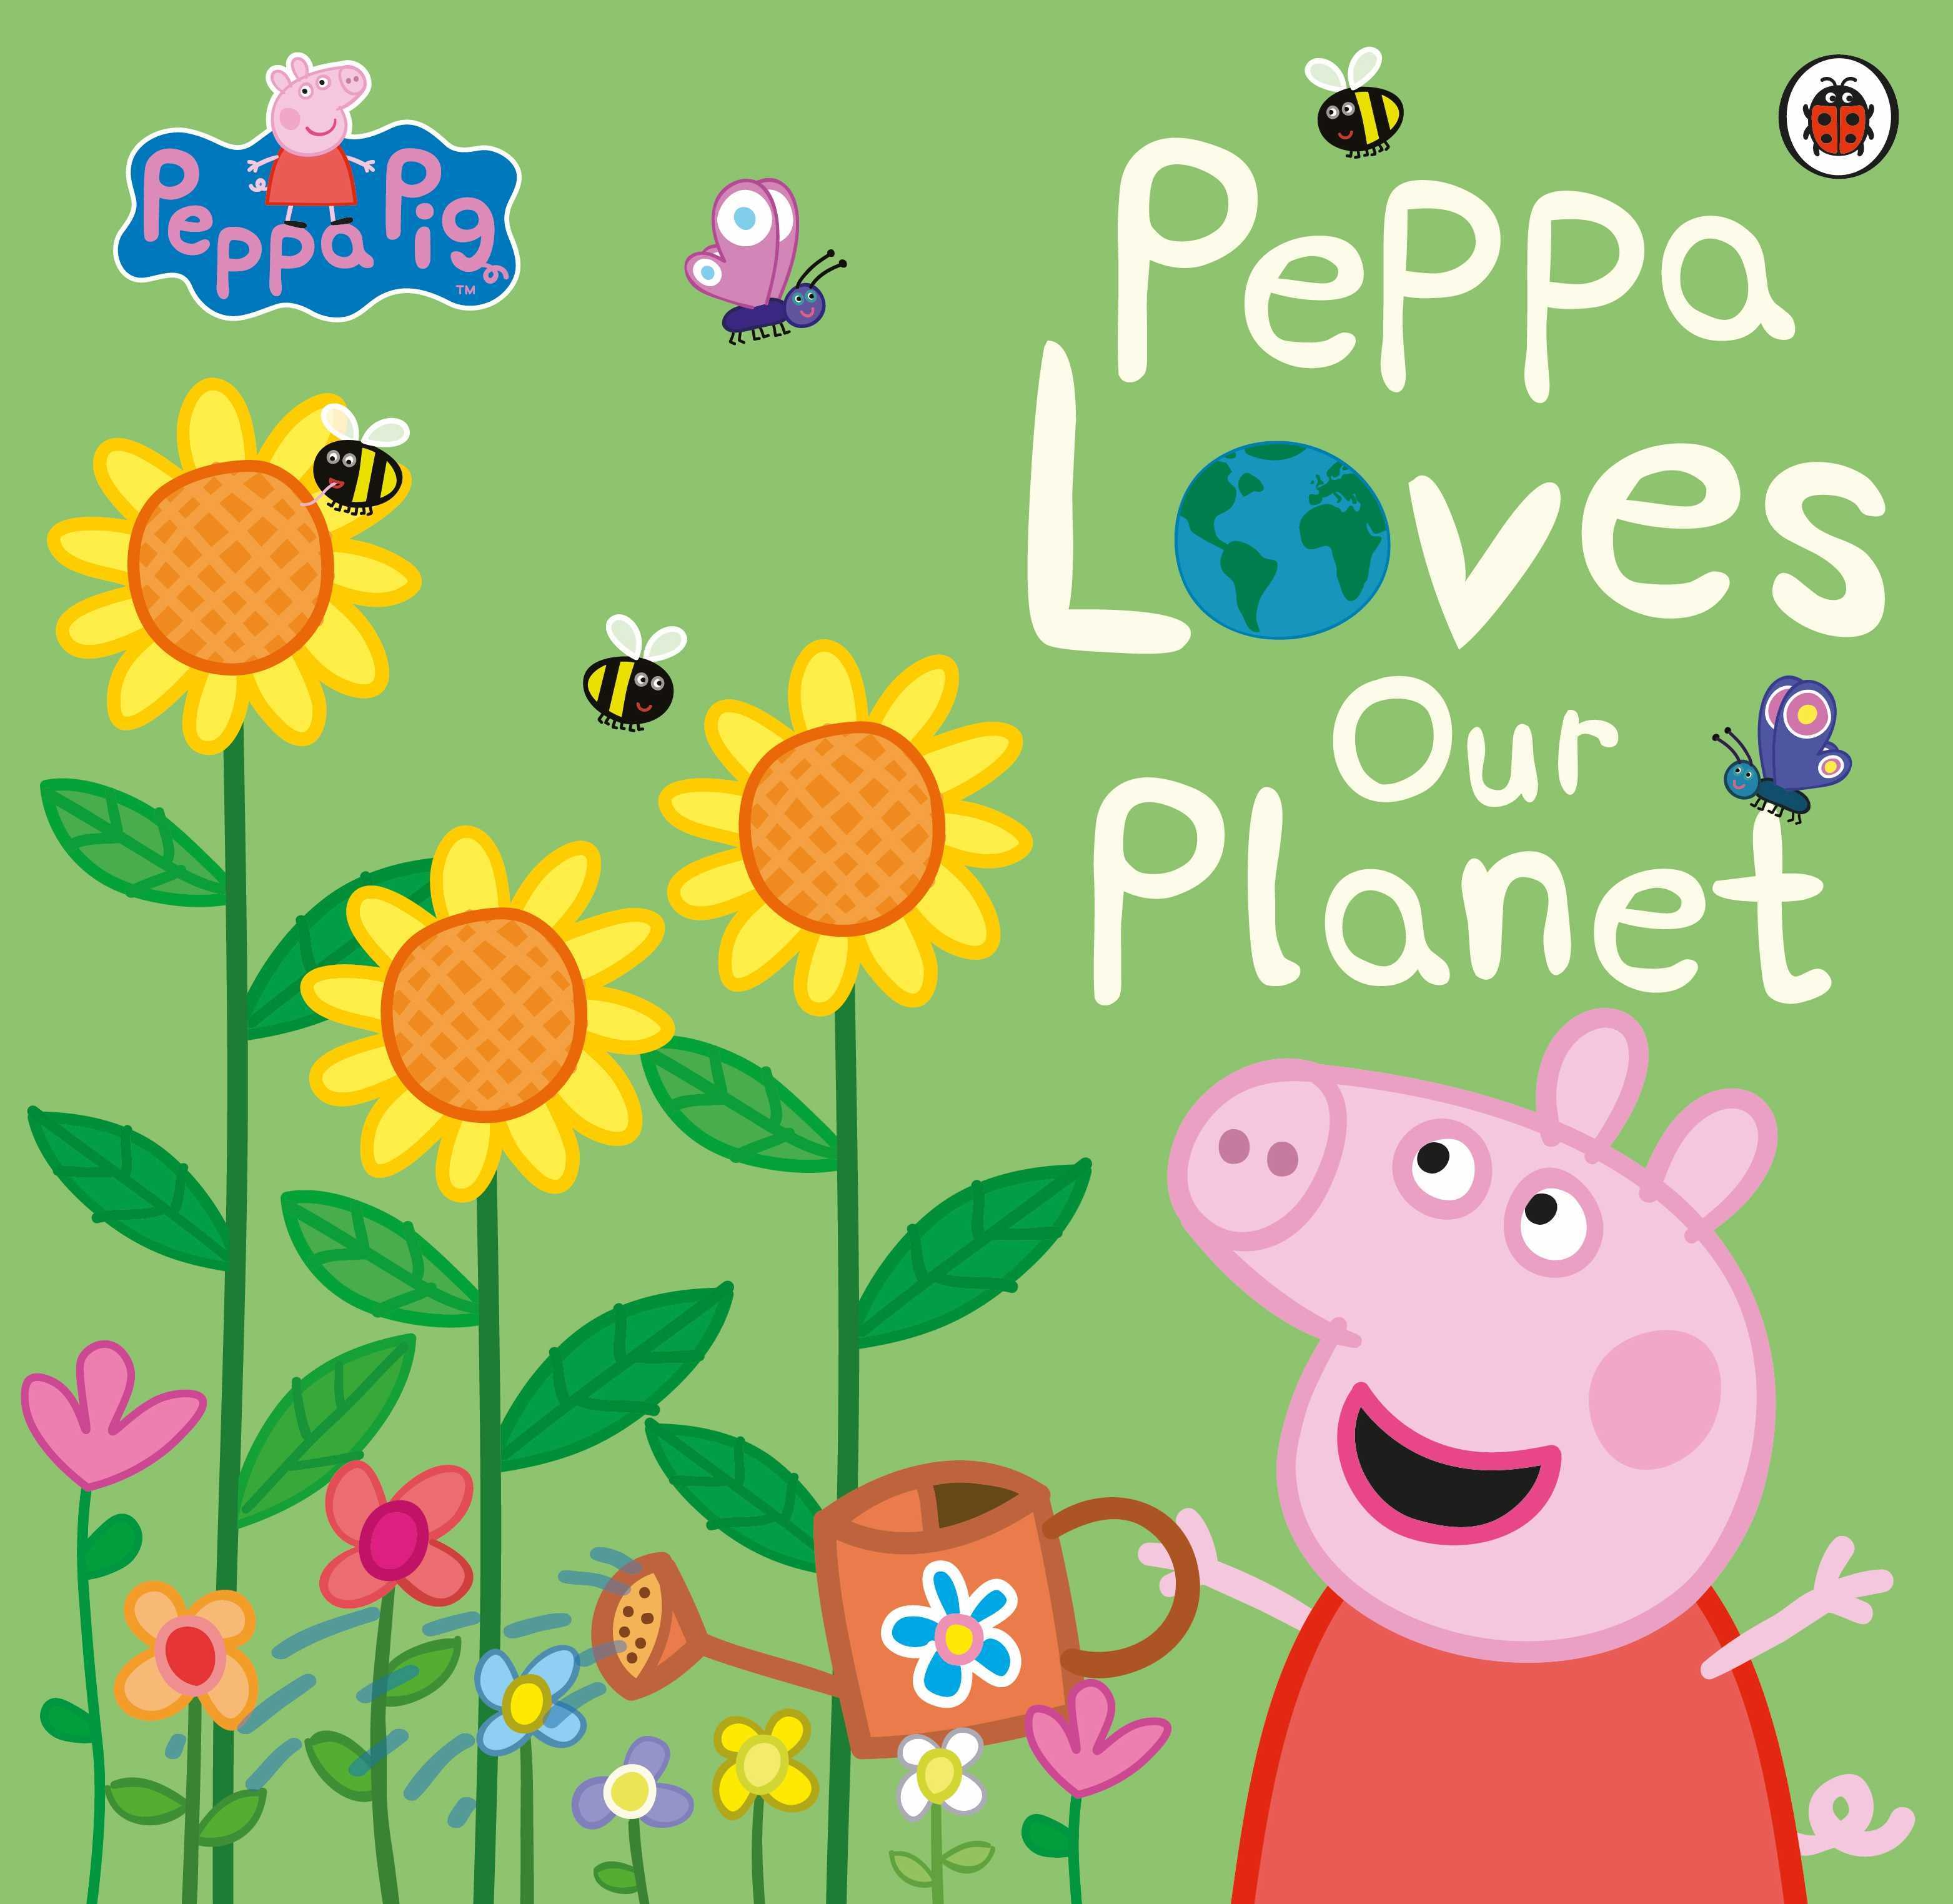 Peppa Loves the Planet